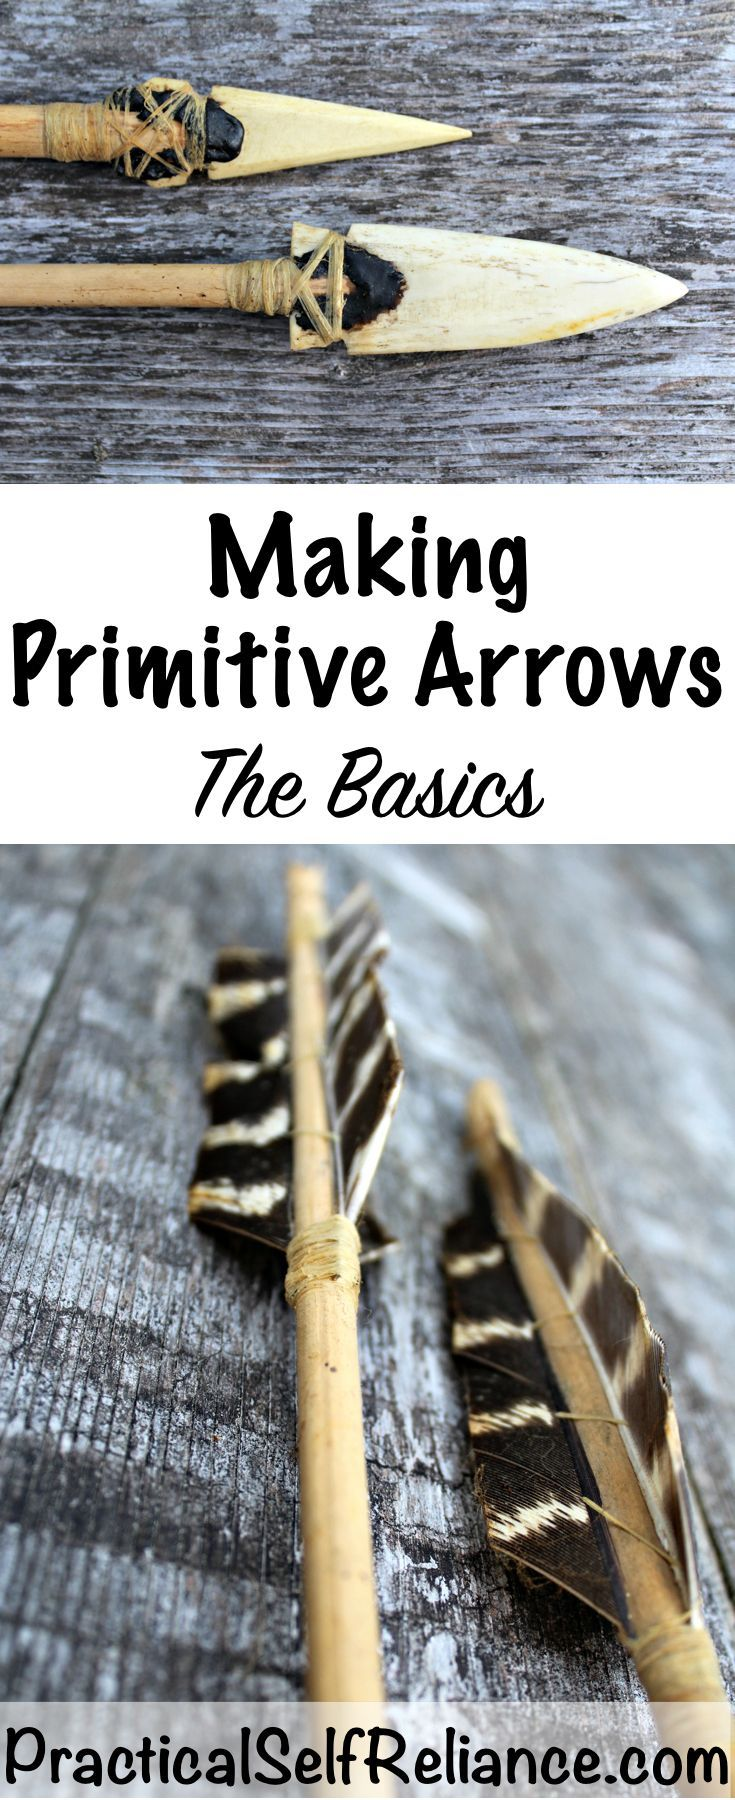 522 Best Raising Kids Images On Pinterest Reliance Pomade How To Make Primitive Arrows The Basics